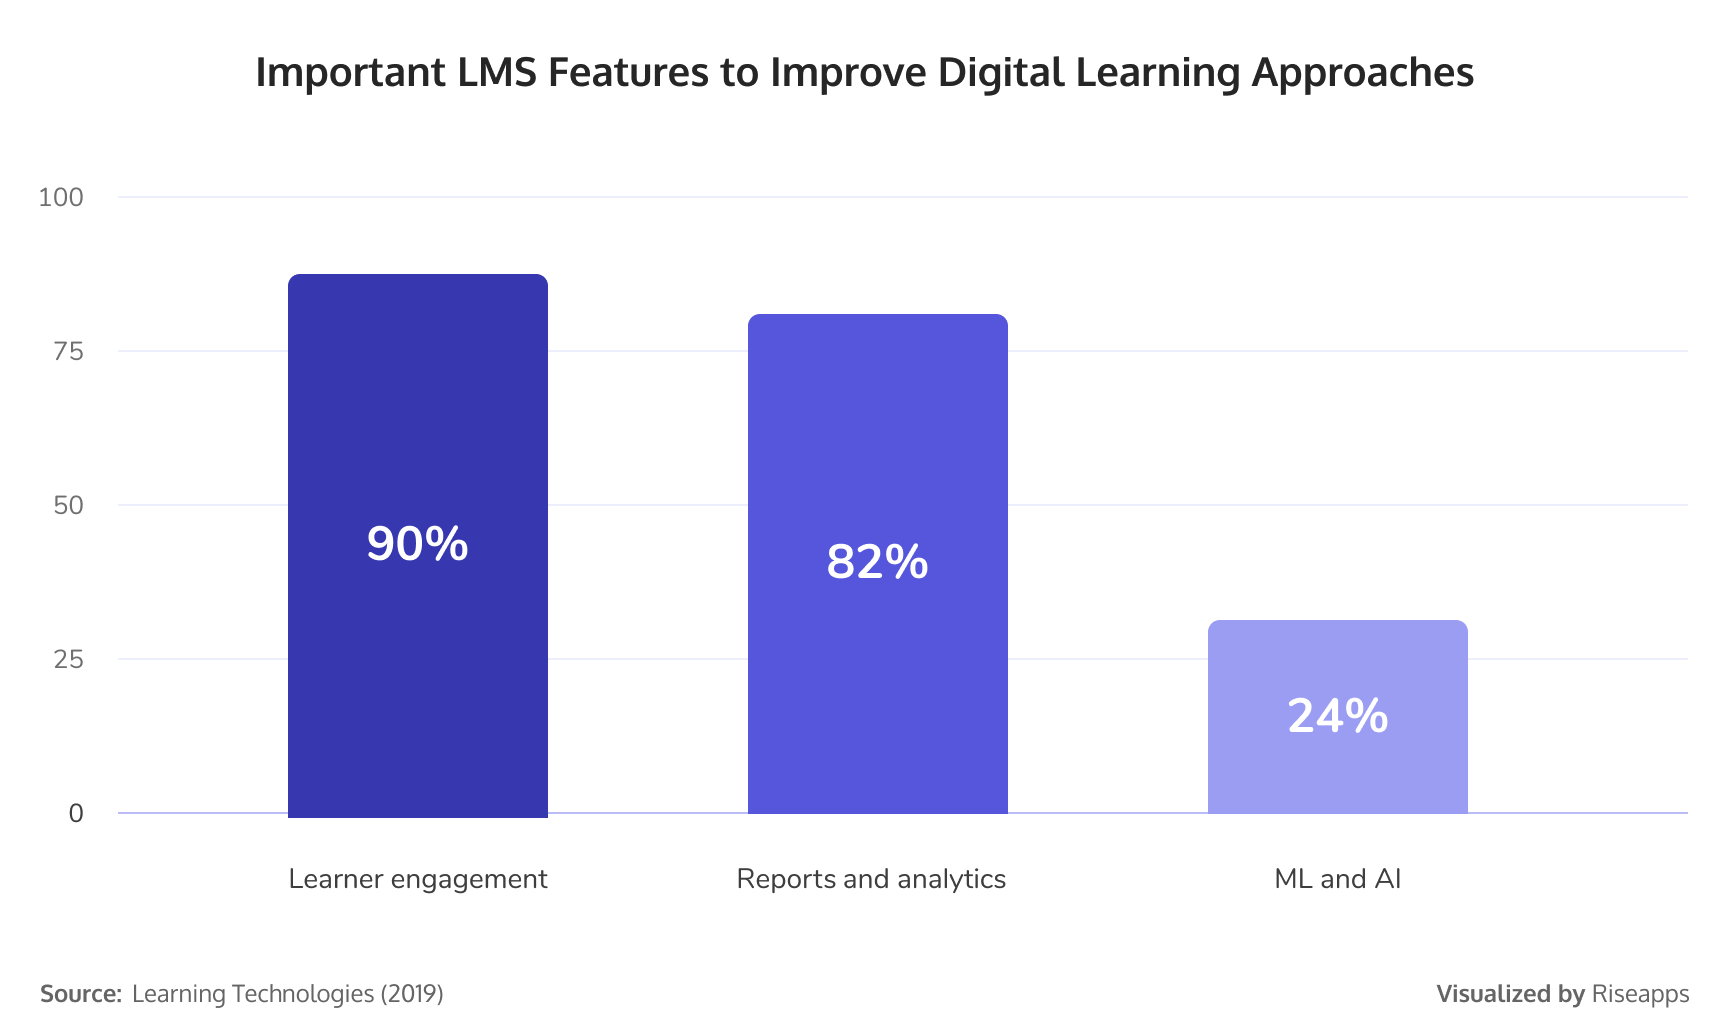 Important LMS features to improve digital learning approaches